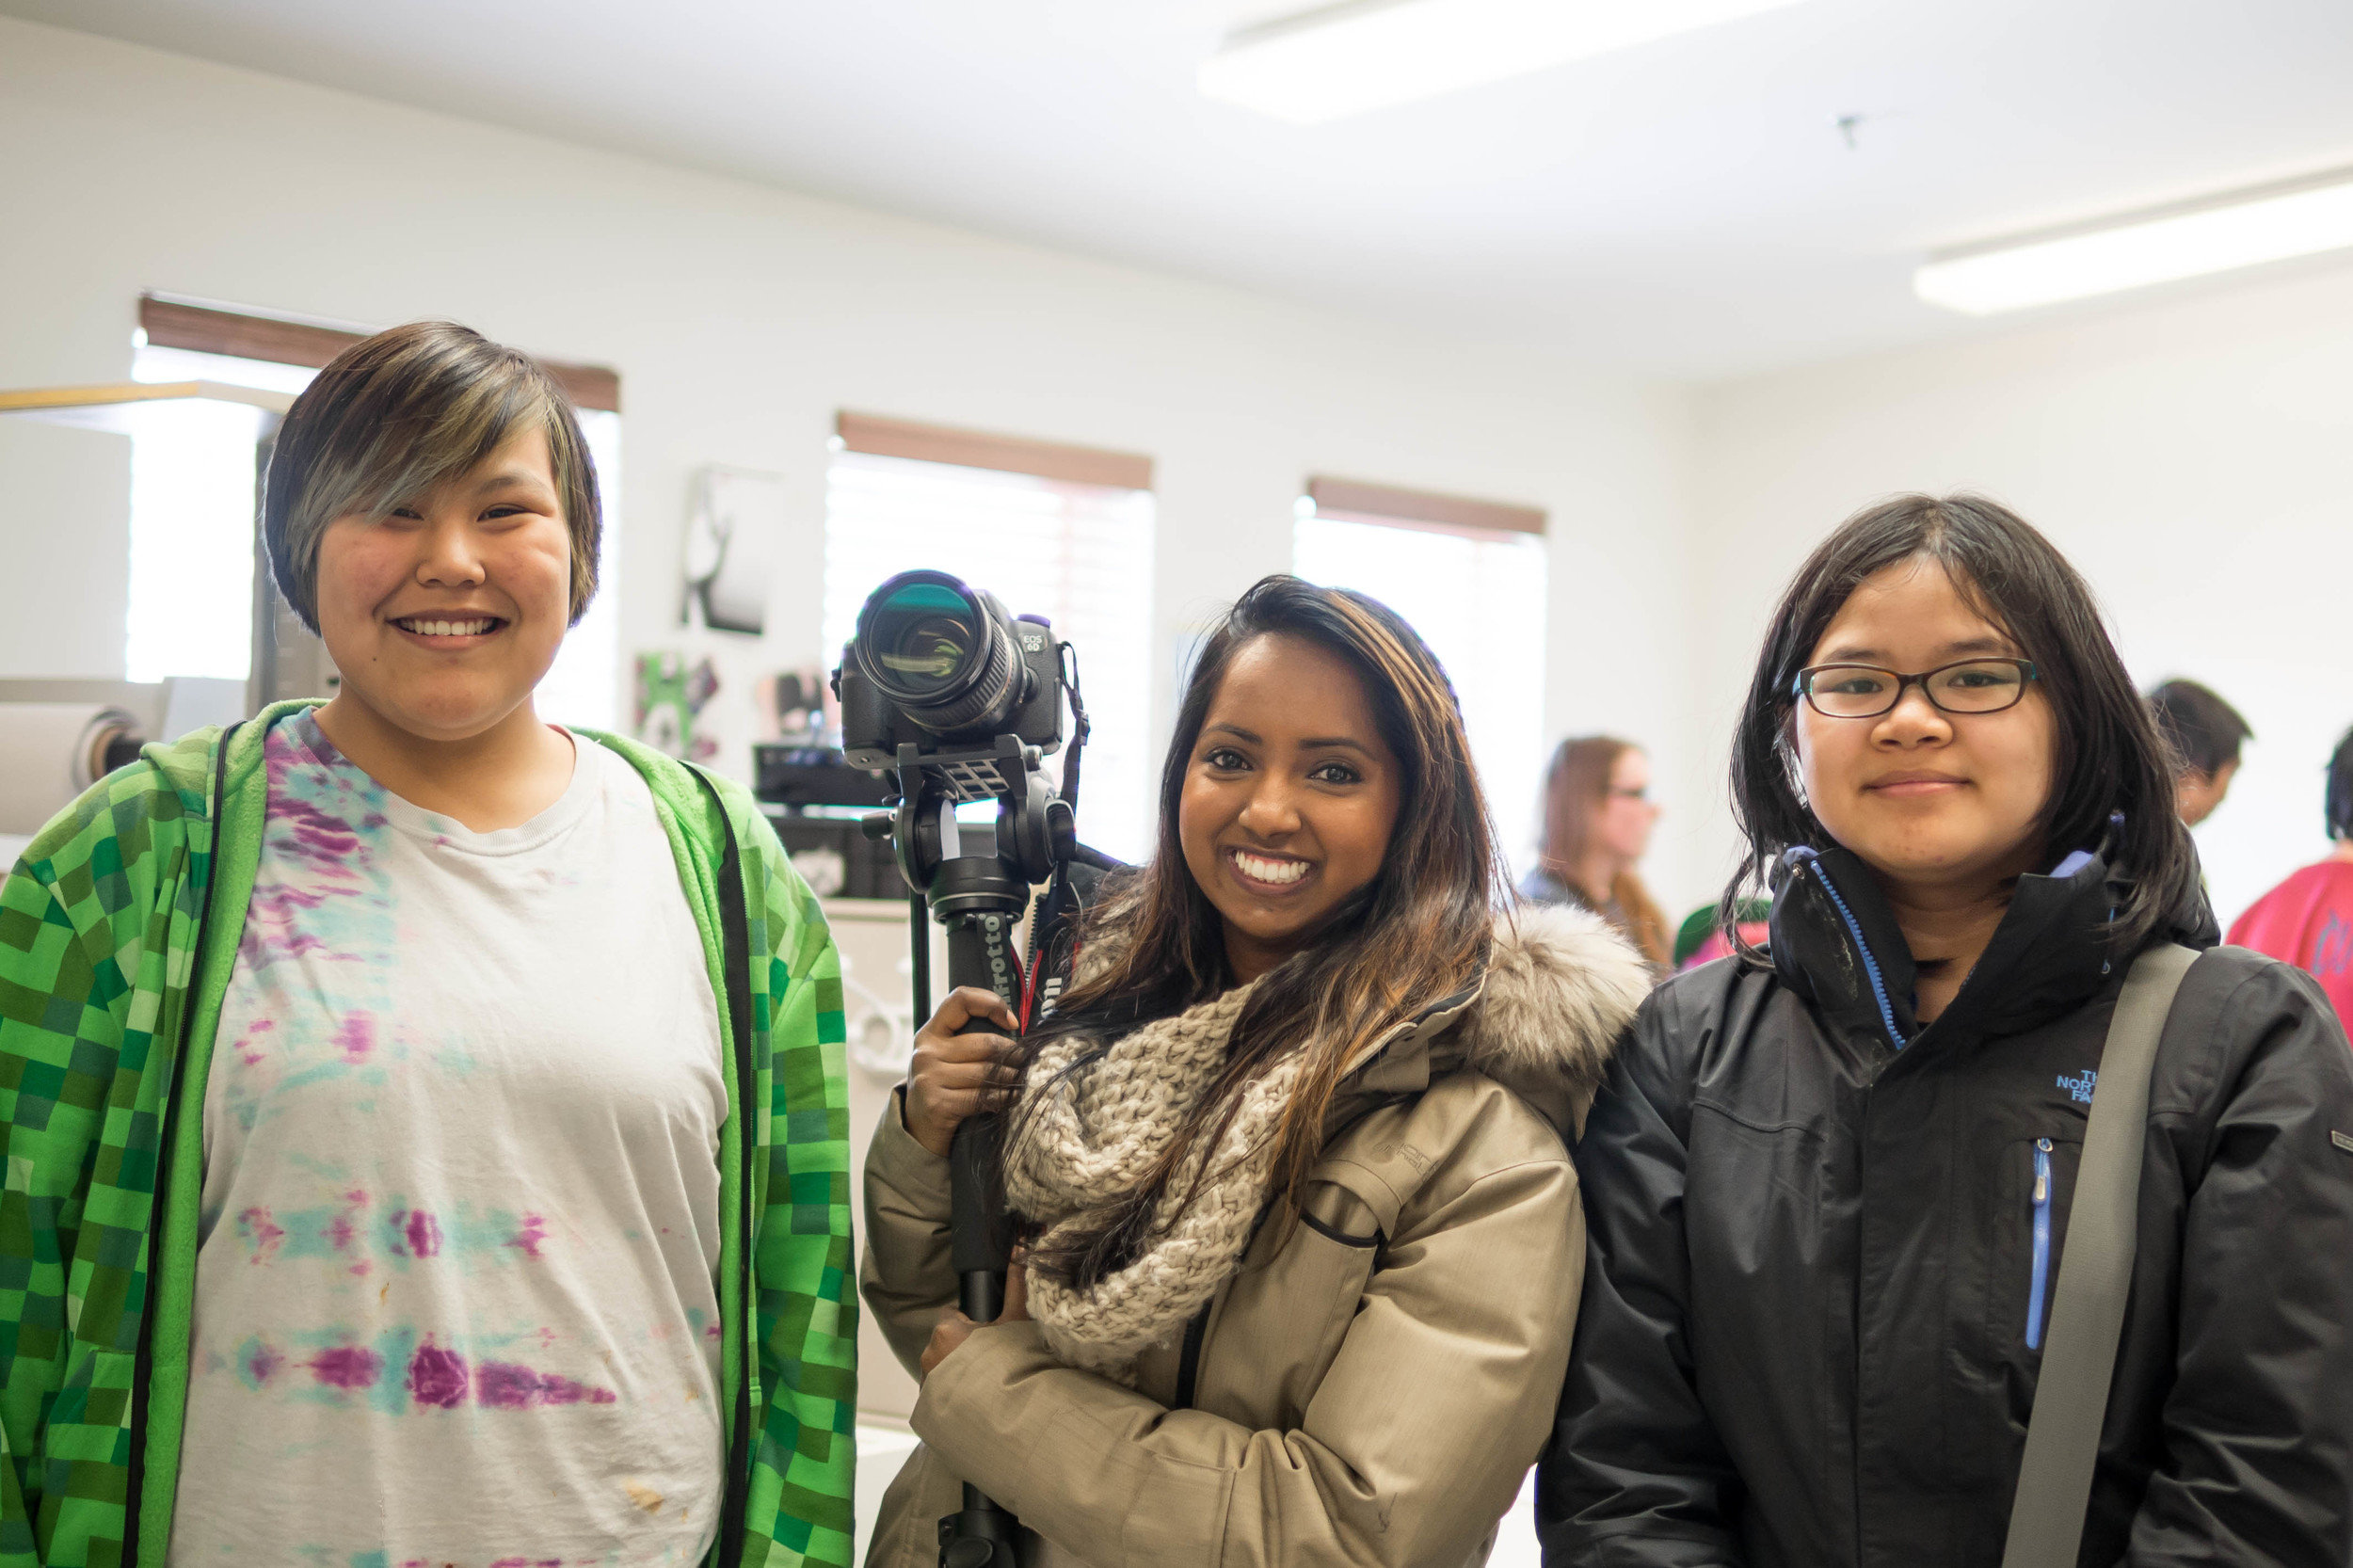 Look at those smiles! Three of the Character Animation Workshop participants. Ages unknown. Photo by Anubha.